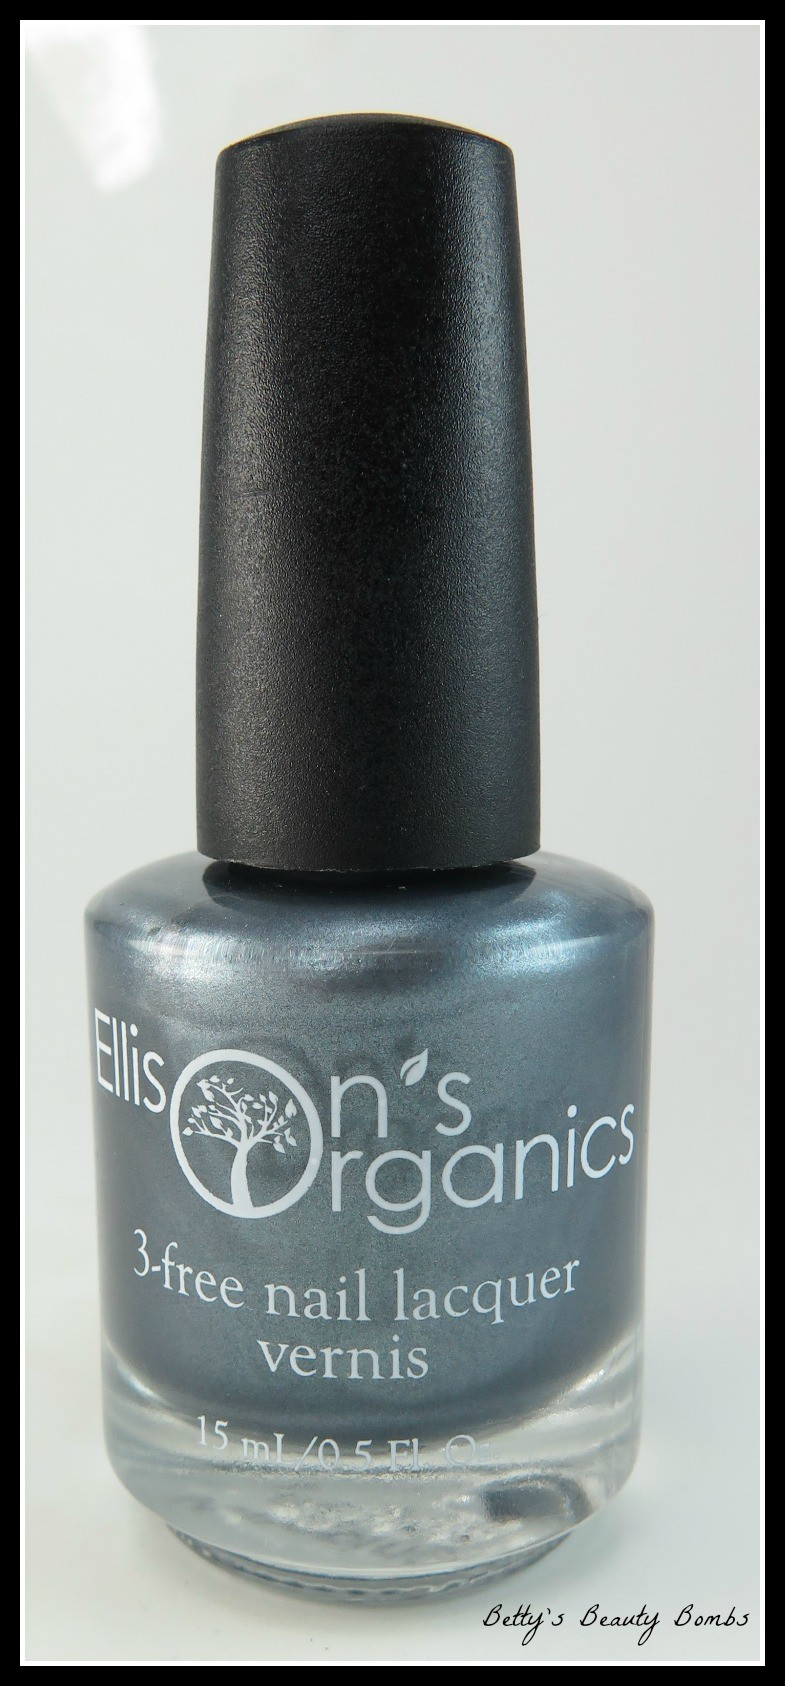 Doctor Who Nail Polish Collection By Ellison S Organics Lazy Betty